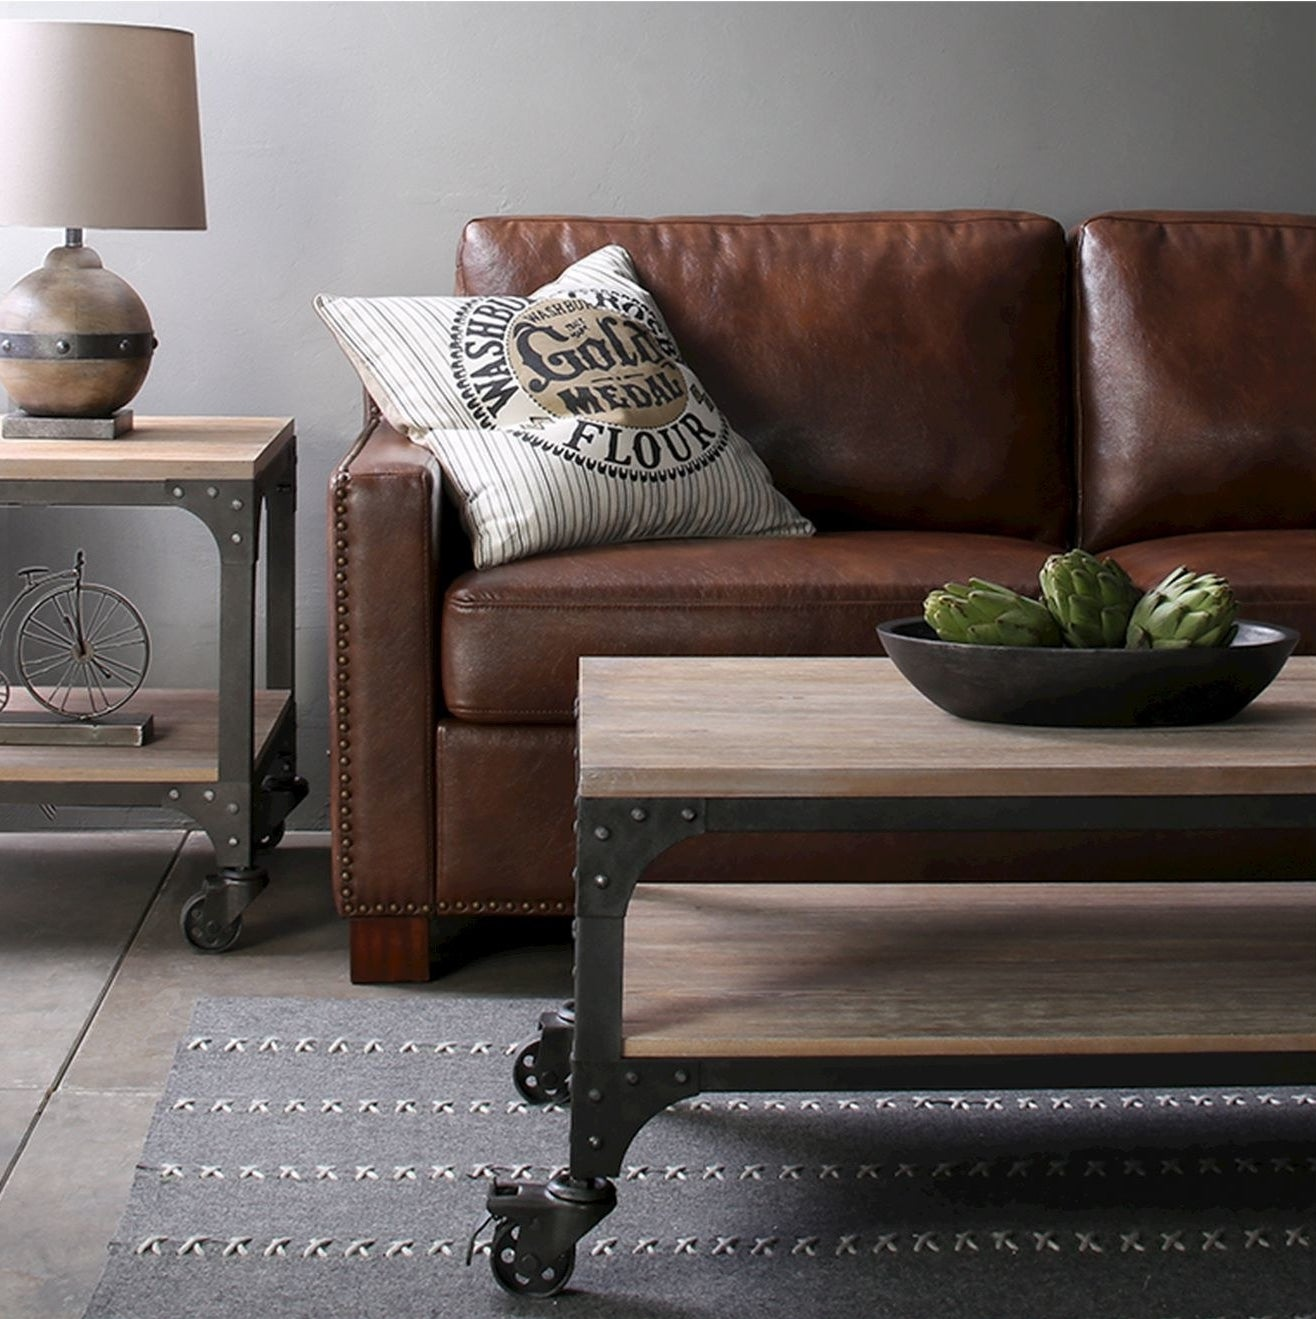 two-shelved coffee table with black wheels